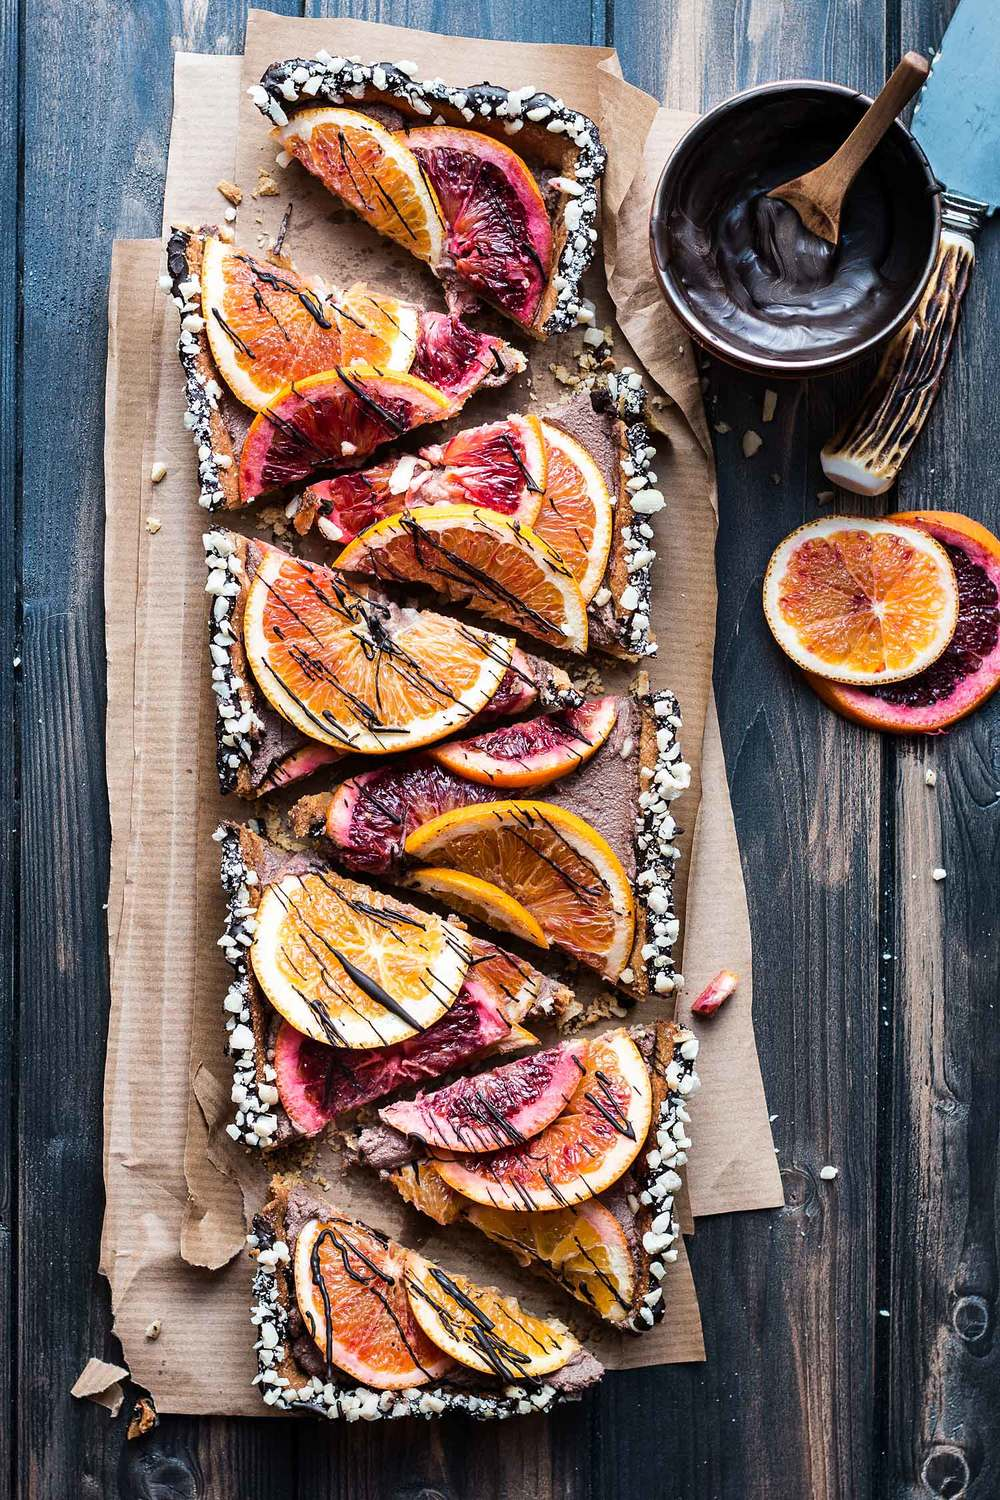 Chocolate ricotta tart with blood oranges by Laura Domingo